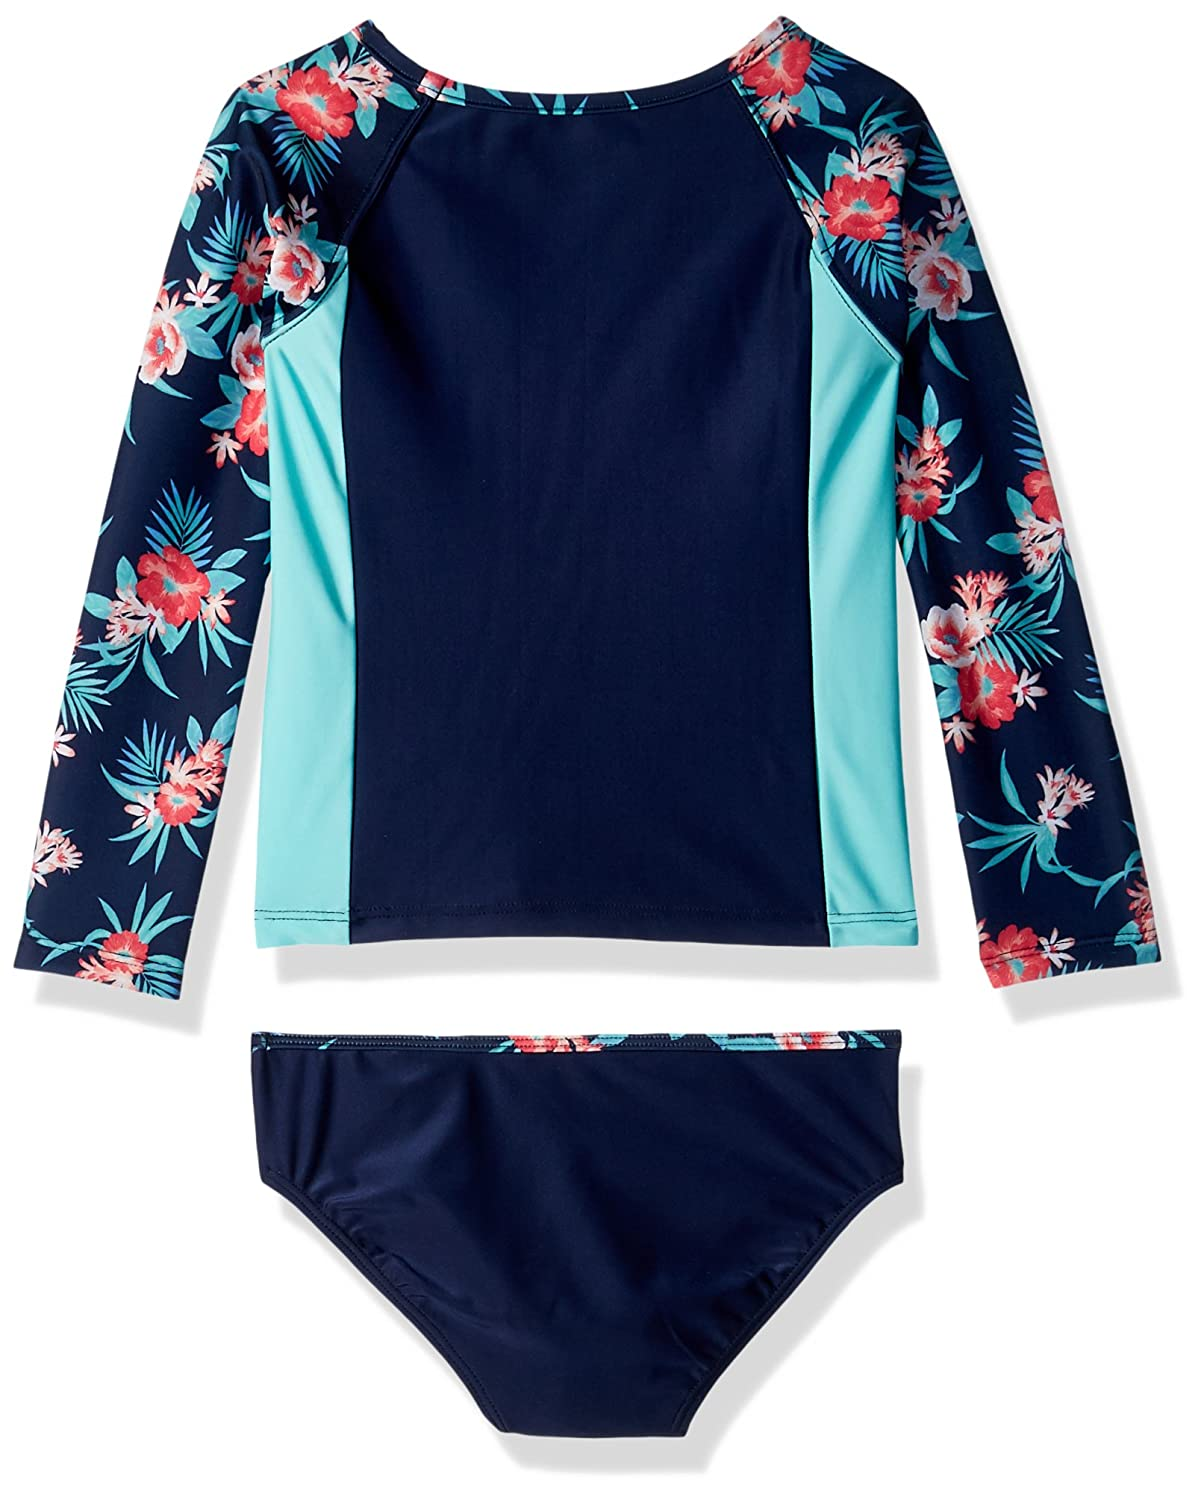 Sun Protection NDO0046Q Nautica Girls Fashion Rashguard Swim Suit Set with UPF 50